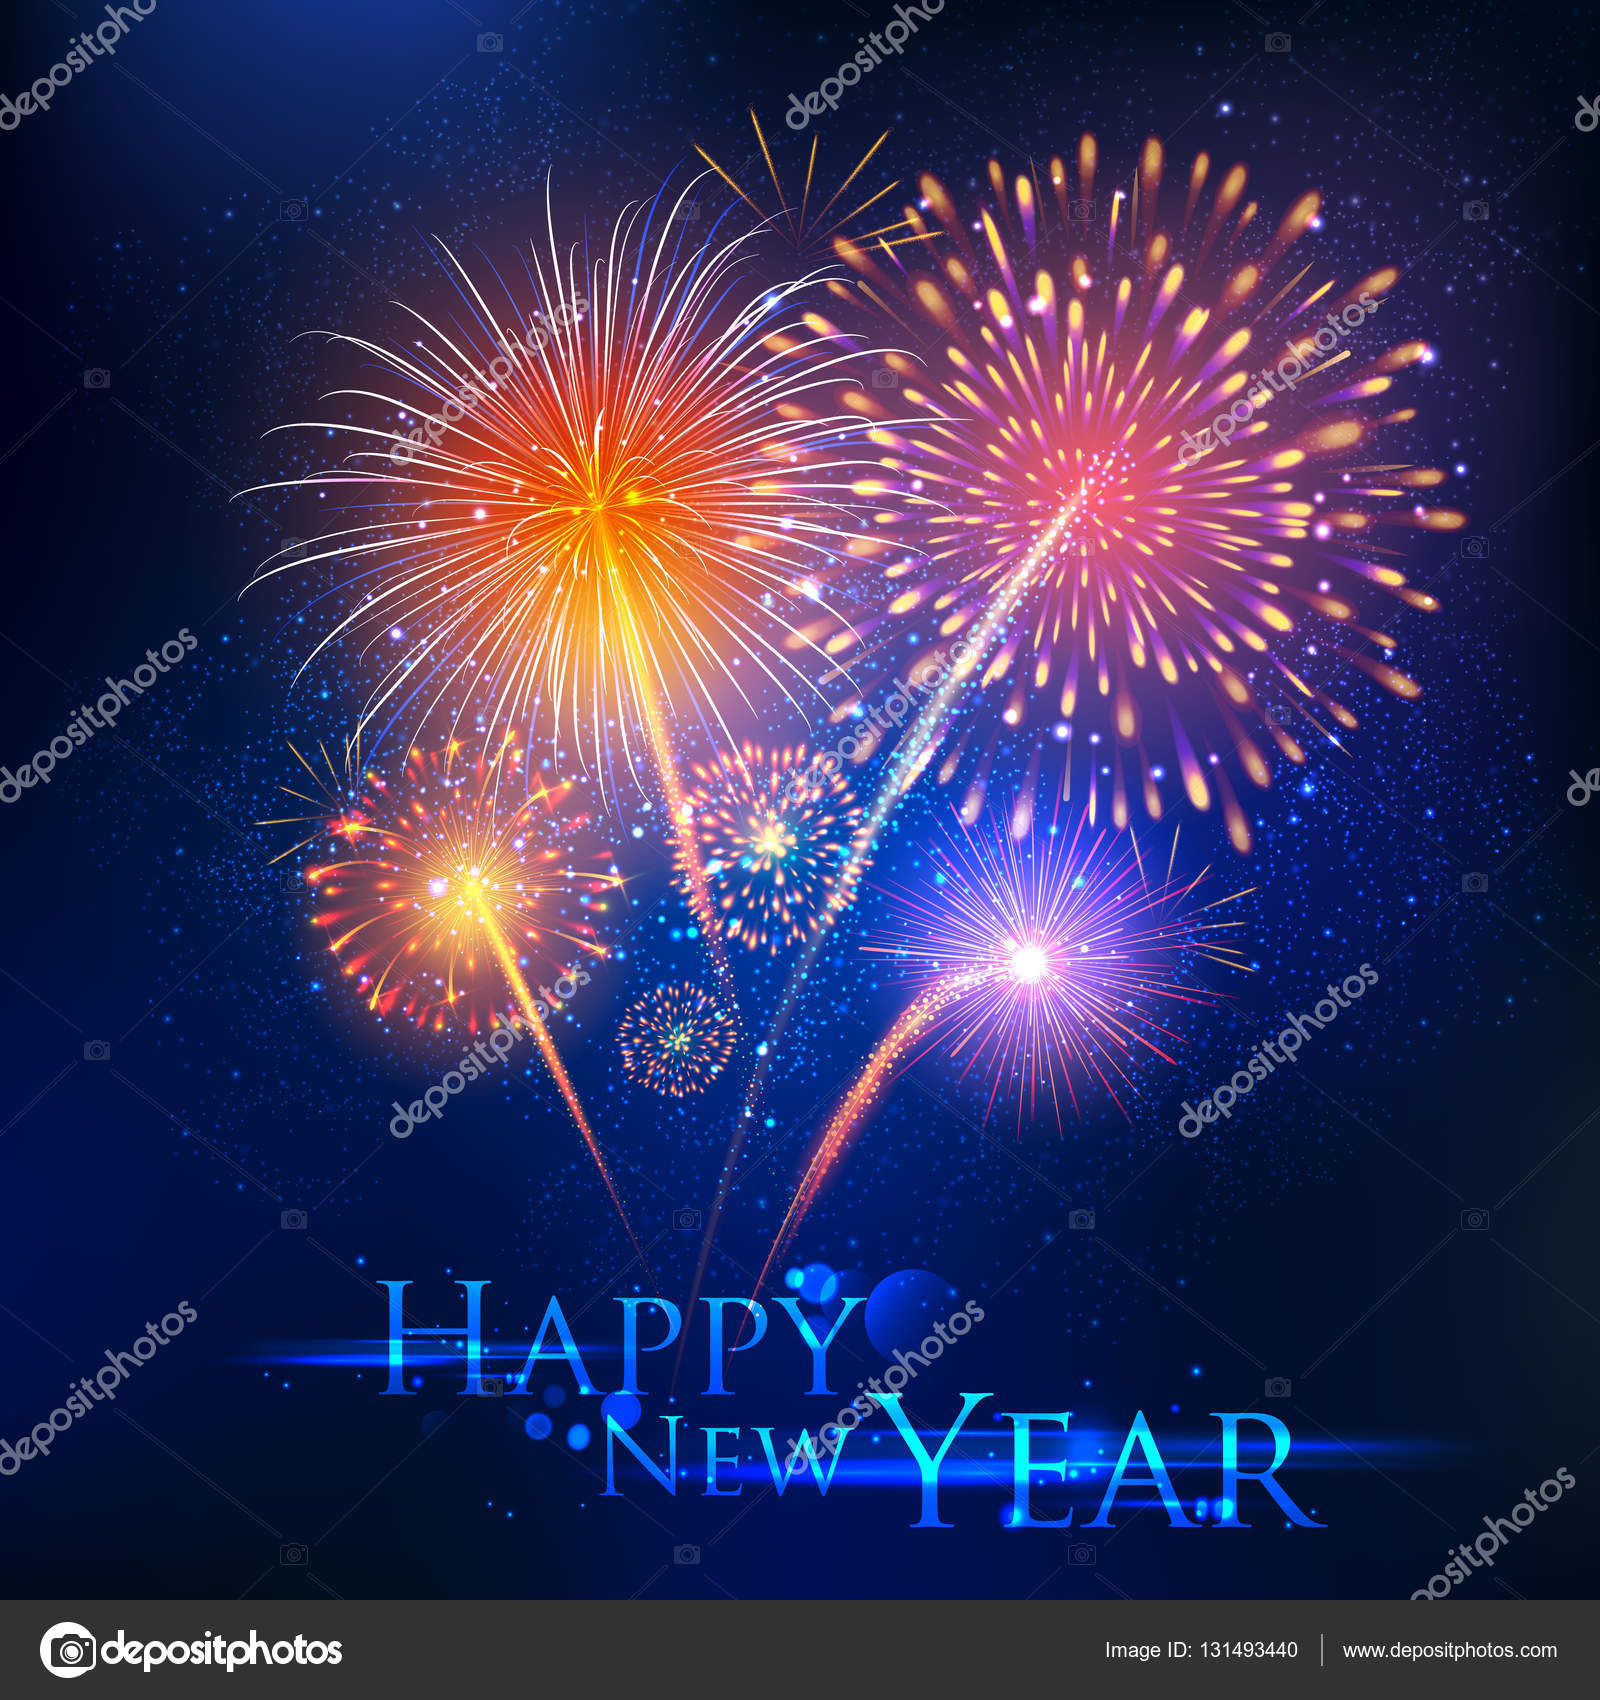 happy new year celebration abstract starburst seasons greetings background with firework stock vector